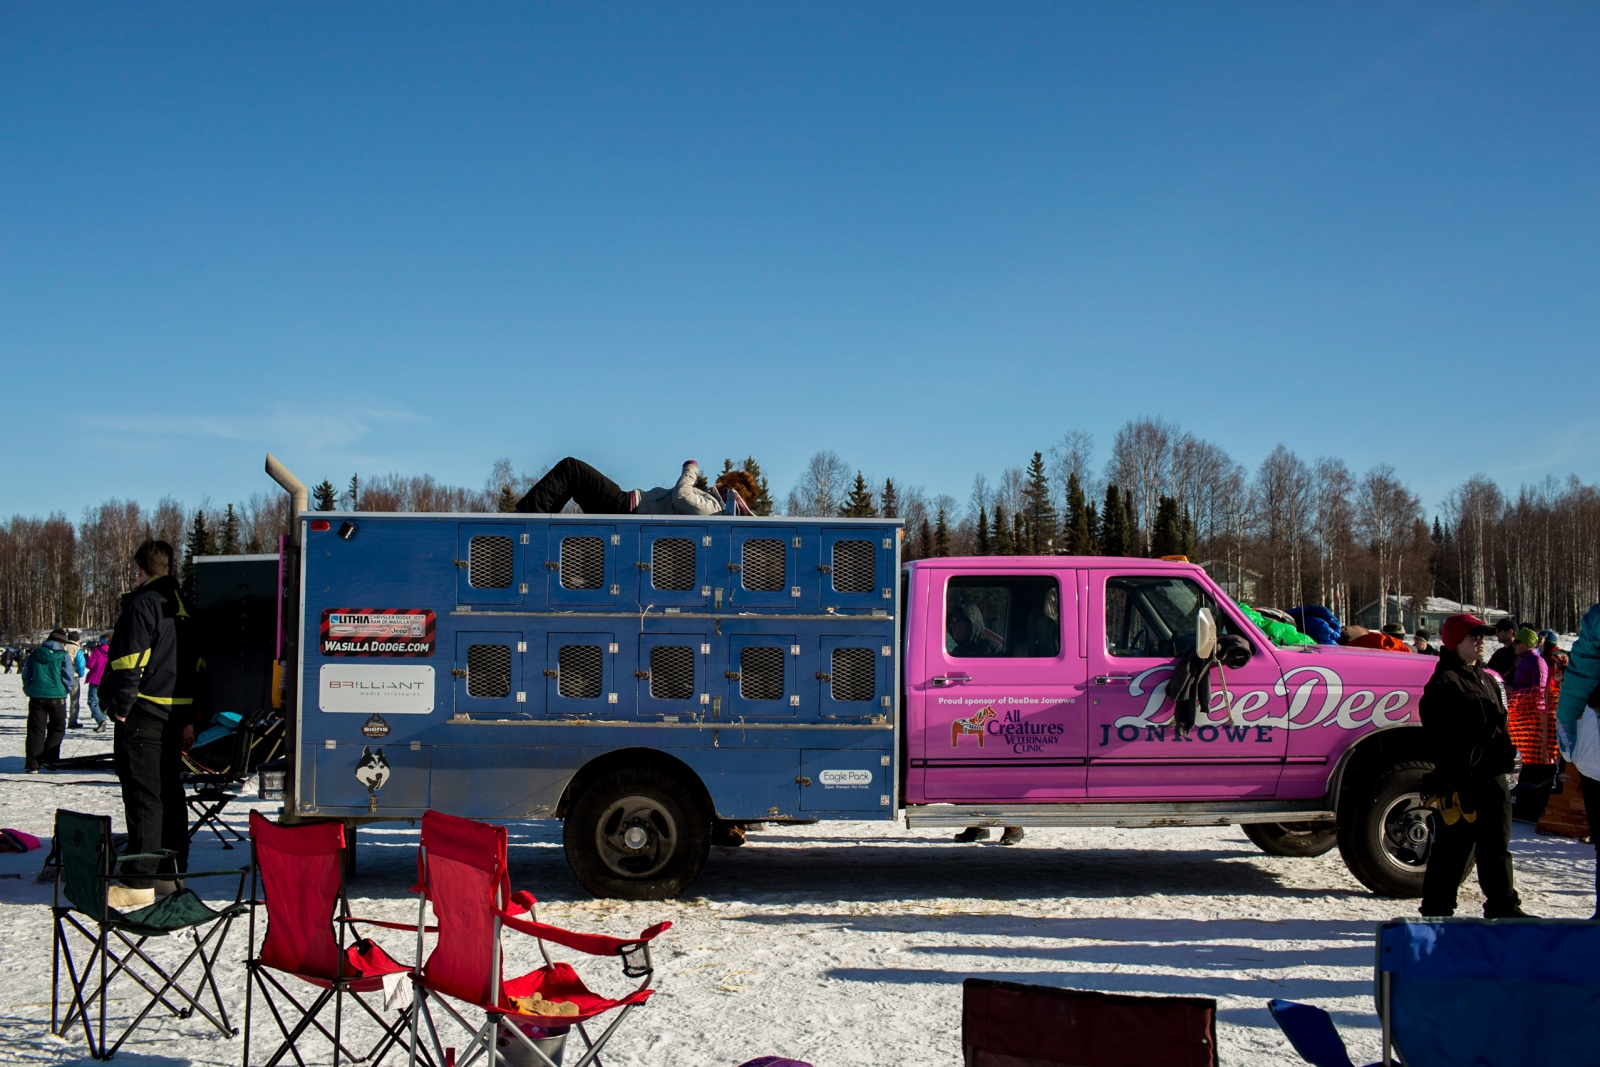 DeeDee Jonrowe's truck at the 2016 Iditarod restart in Willow, Alaska on March 6, 2016. DeeDee has competed in the Iditarod 34 times and placed in the top 10 16 times.